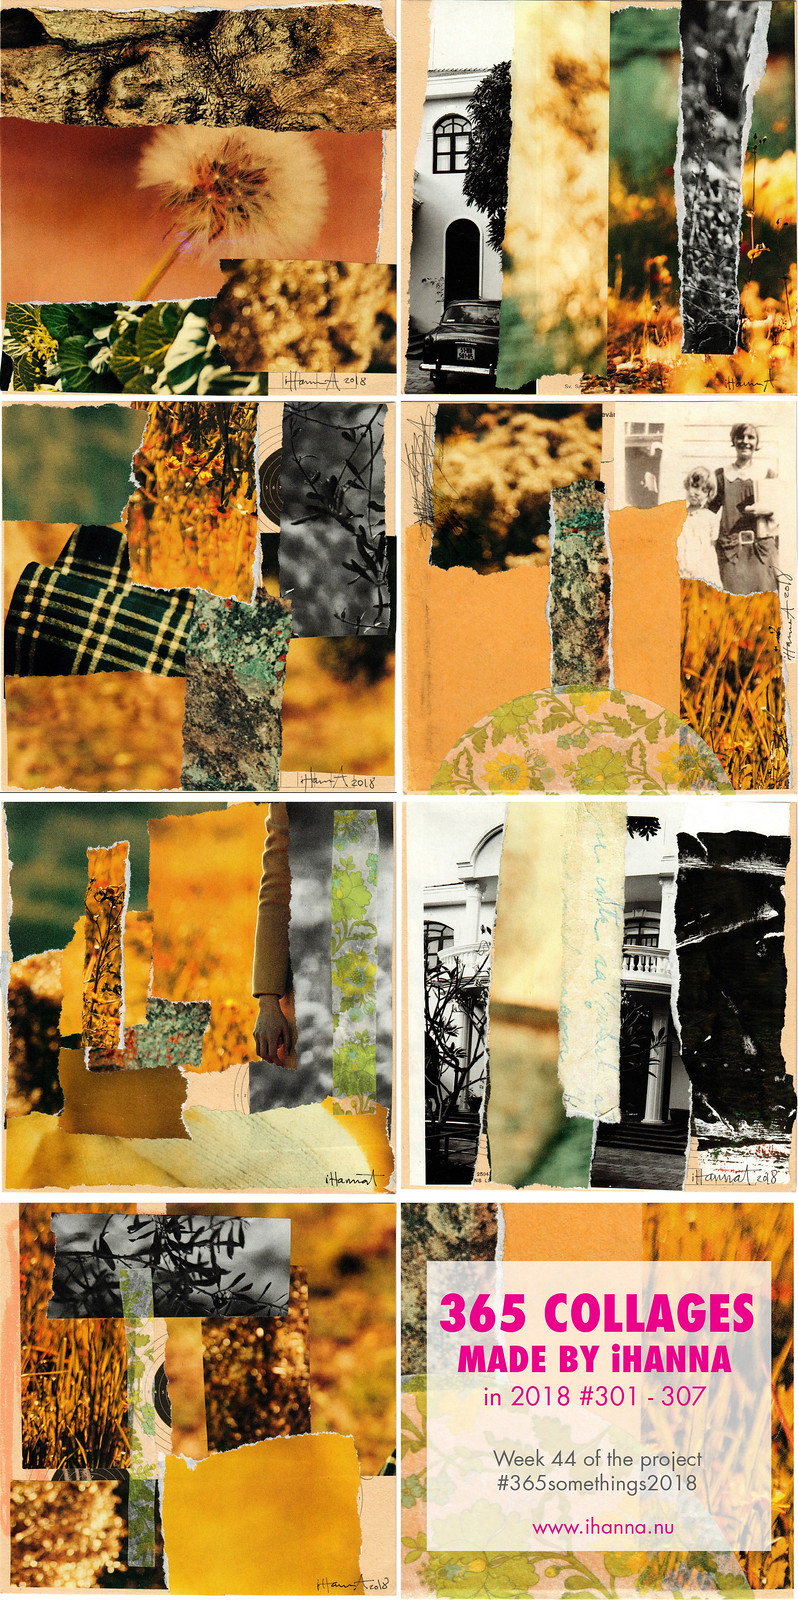 iHanna's 365 Collages in 2018 - Week 44 #365somethings2018